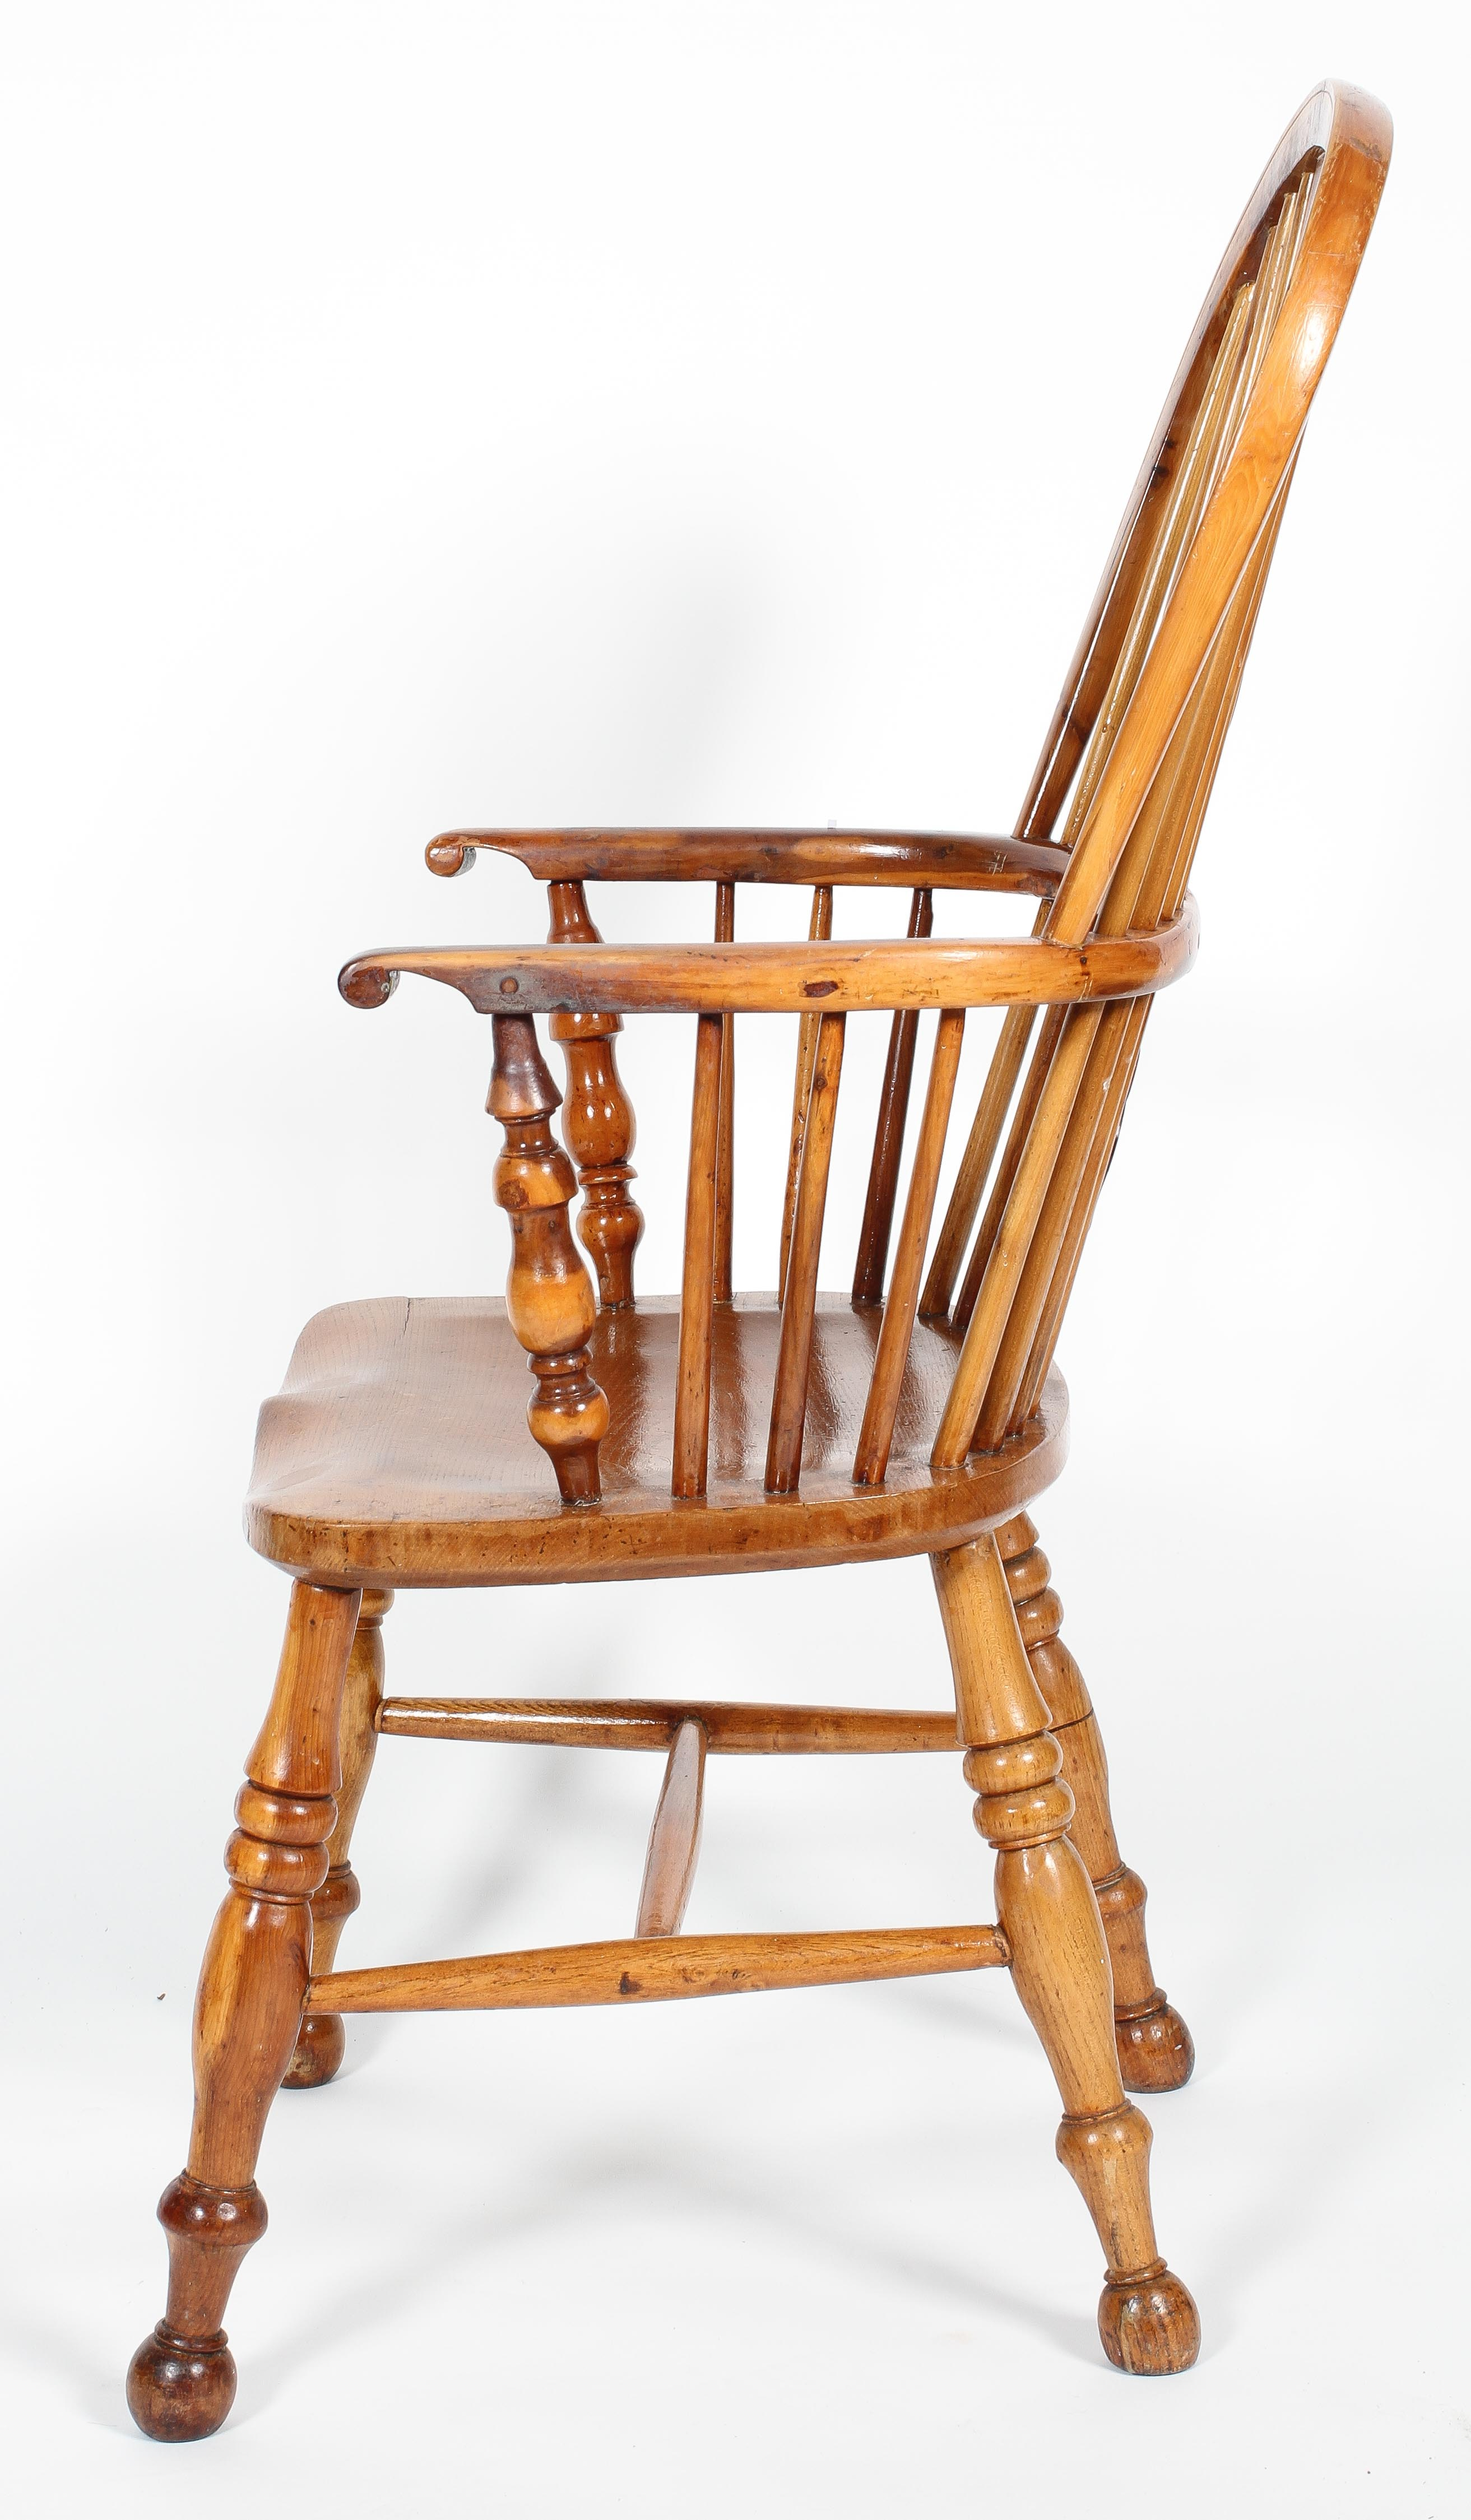 An oak and yew Windsor chair, with pierced scroll splat and baluster arm supports, - Image 2 of 2